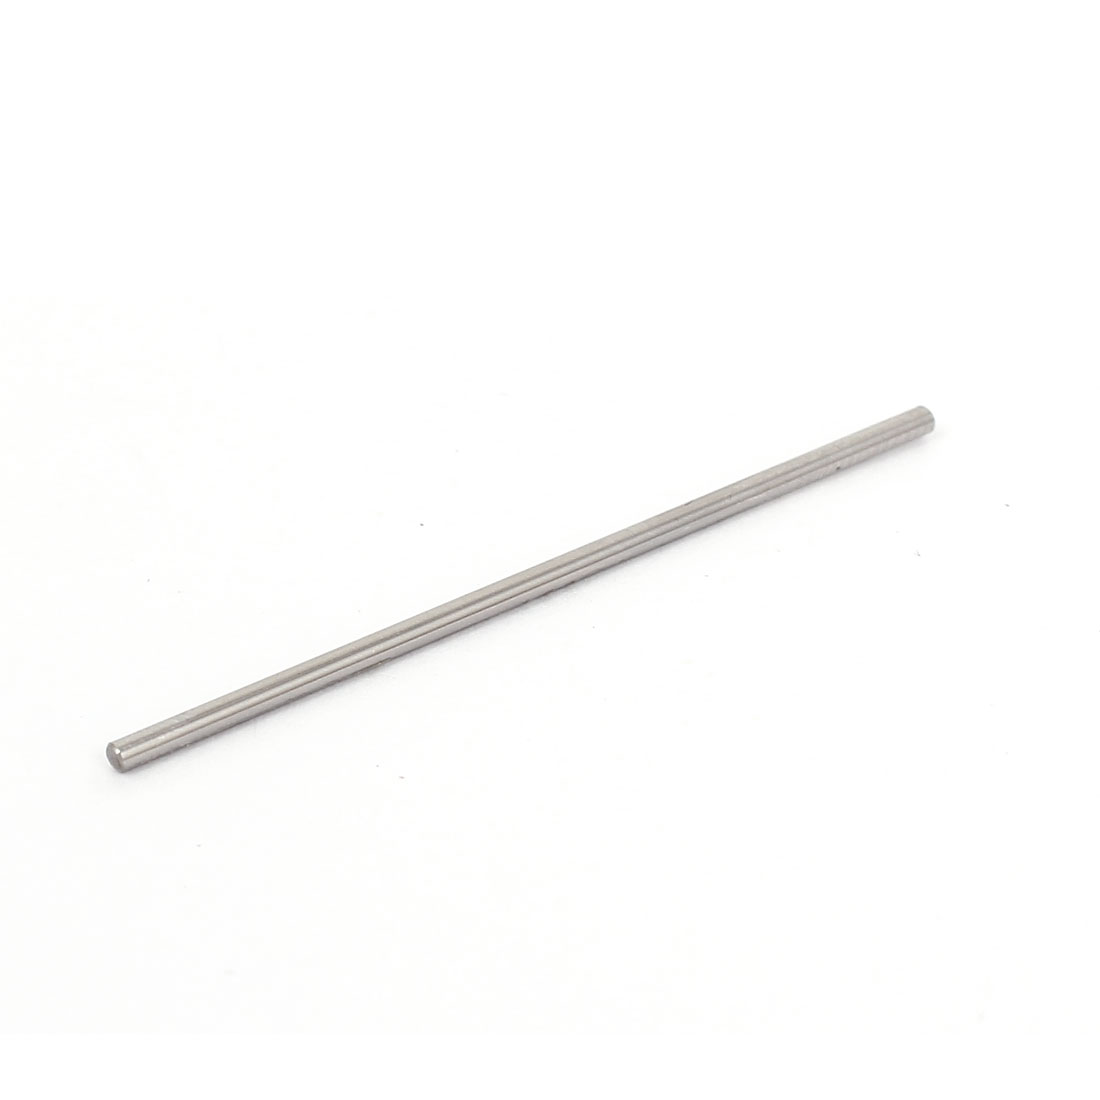 1.52mm Diameter 50mm Length Tungsten Carbide Pin Gage Gauge